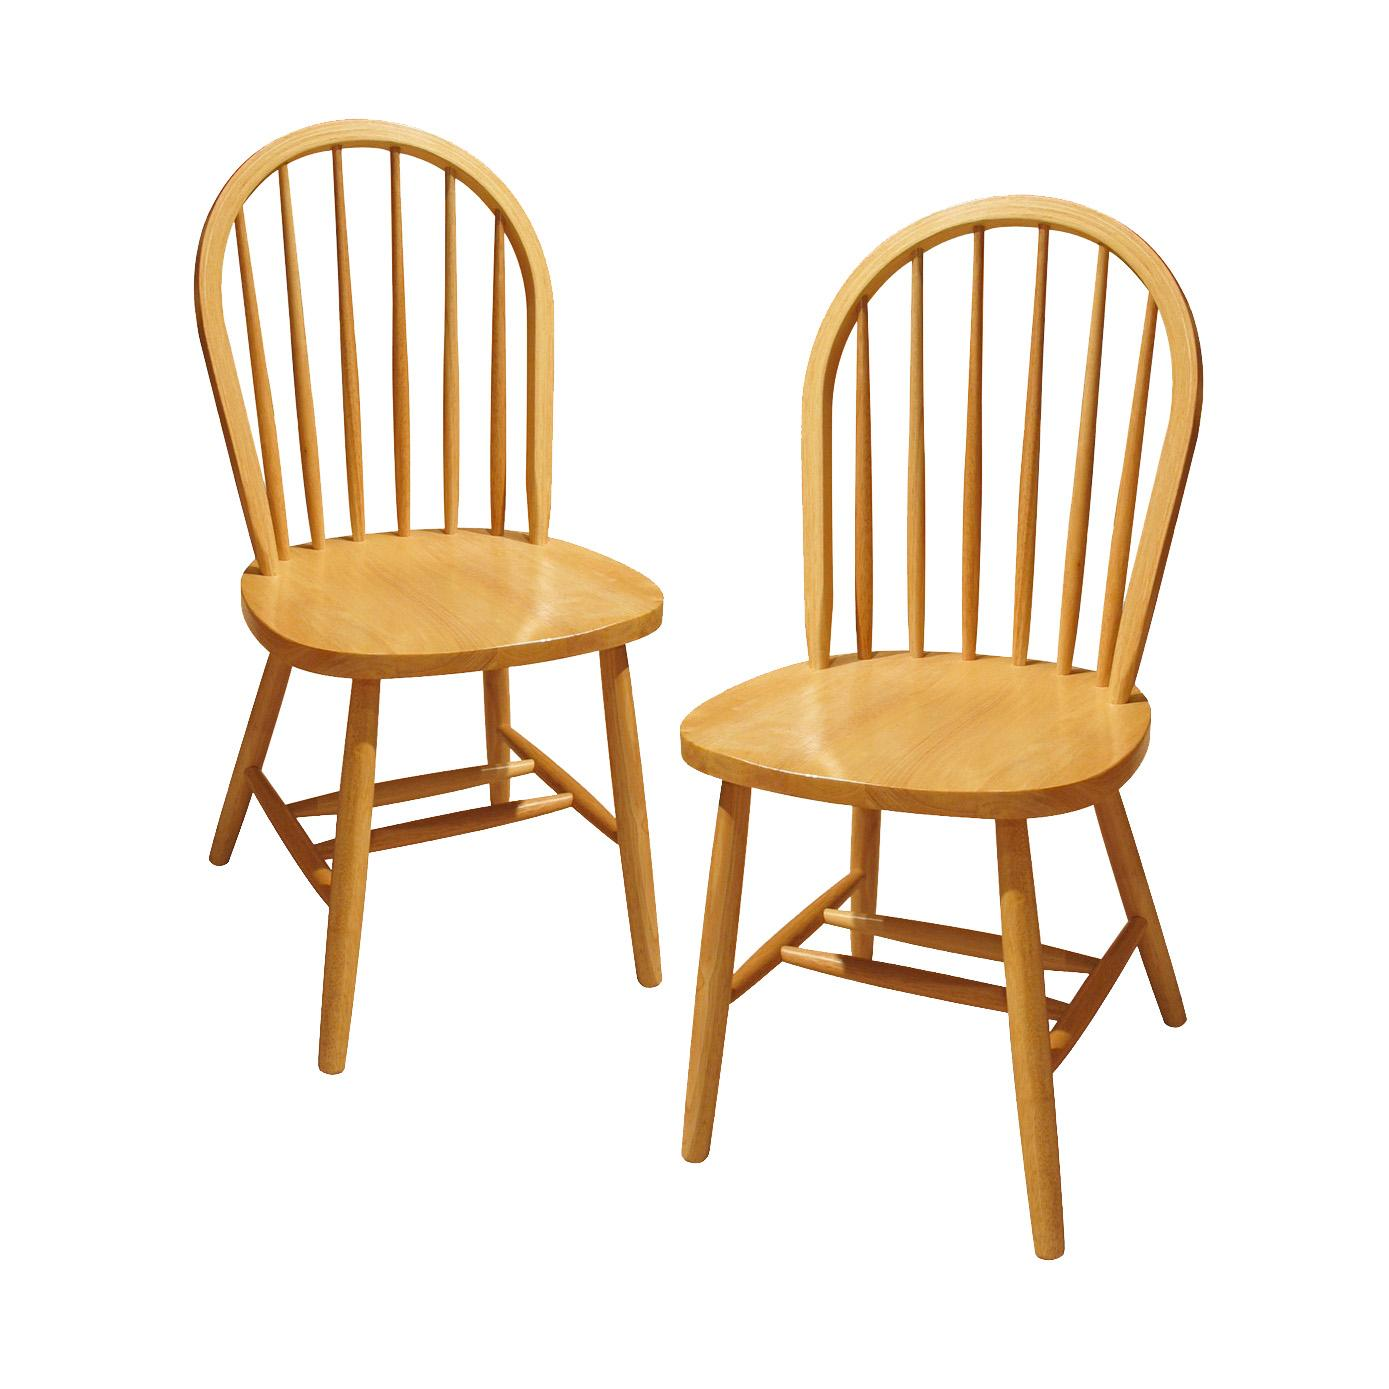 Kitchen Chair Amazoncom Winsome Wood Windsor Chair Natural Set Of 2 Chairs